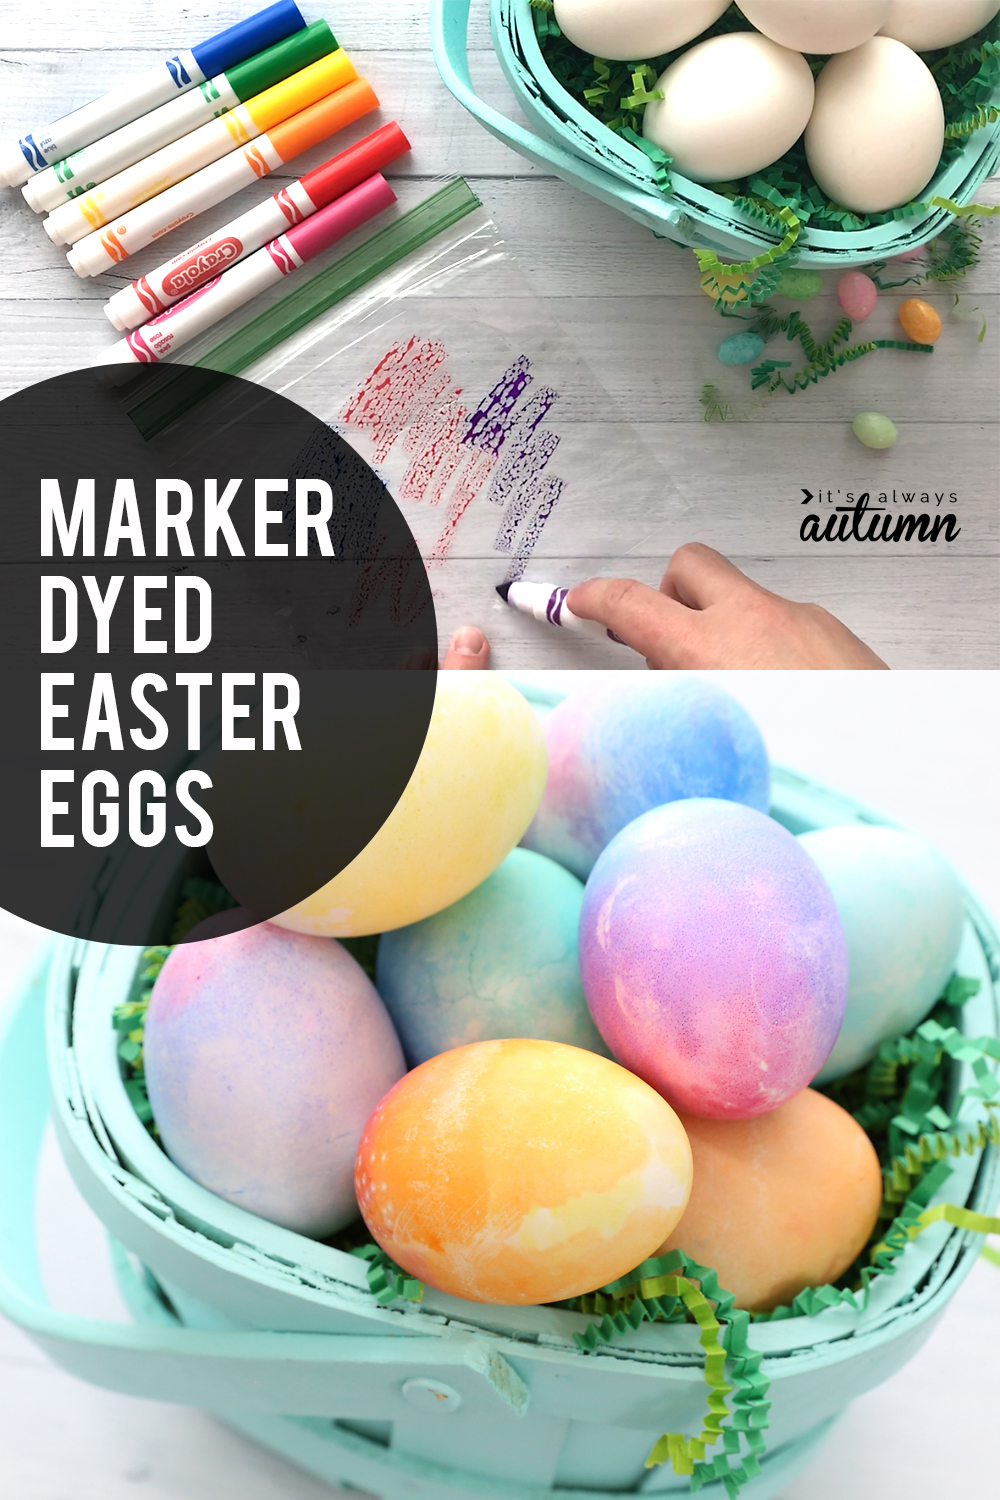 Marker dyed Easter eggs